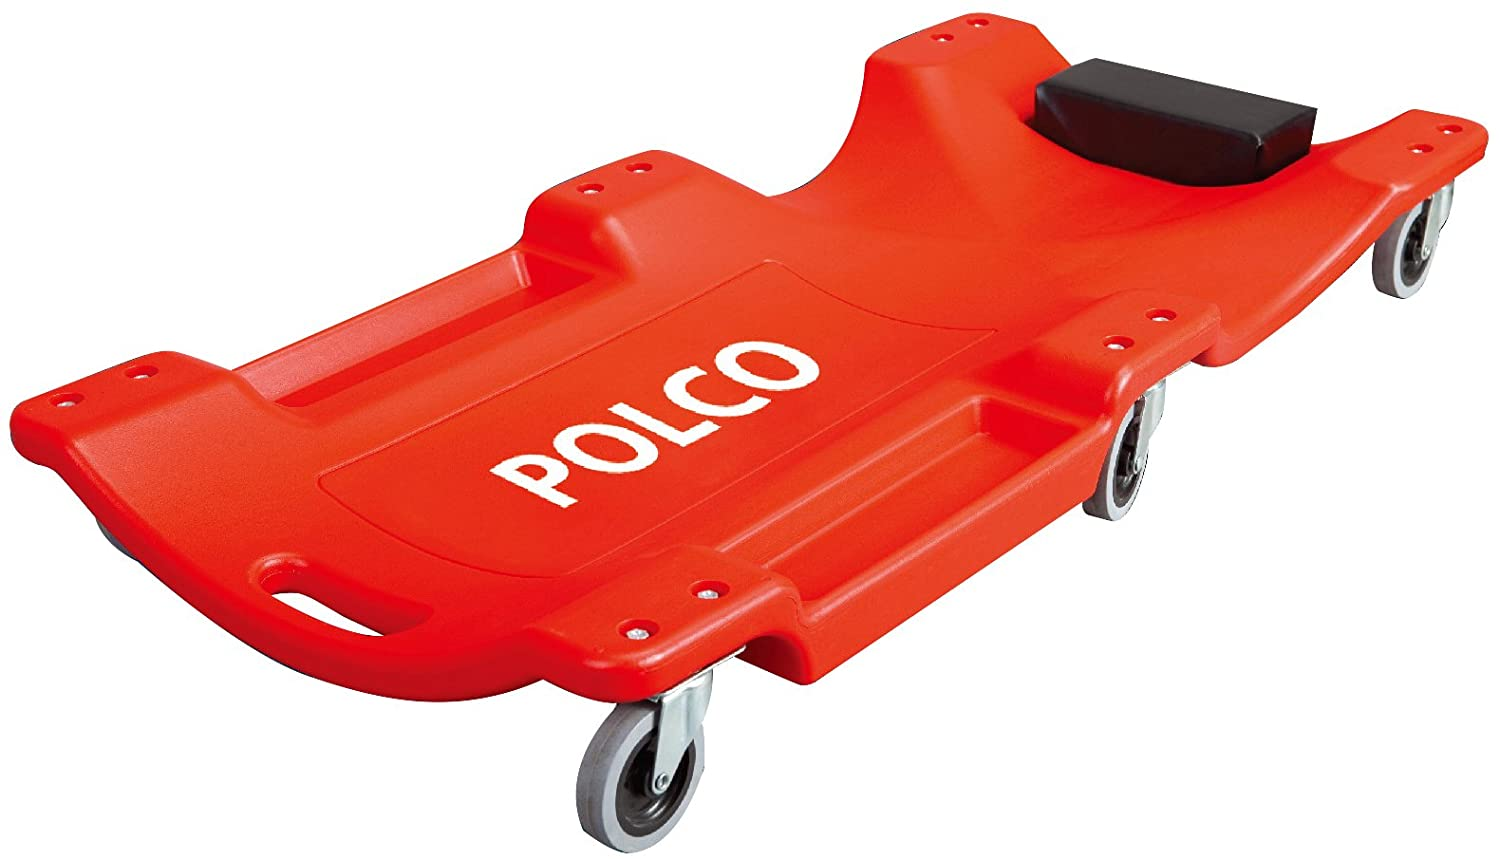 POLCO POLC8 - Carrello da meccanico, 100 cm circa Custom Accessories Europe Limited